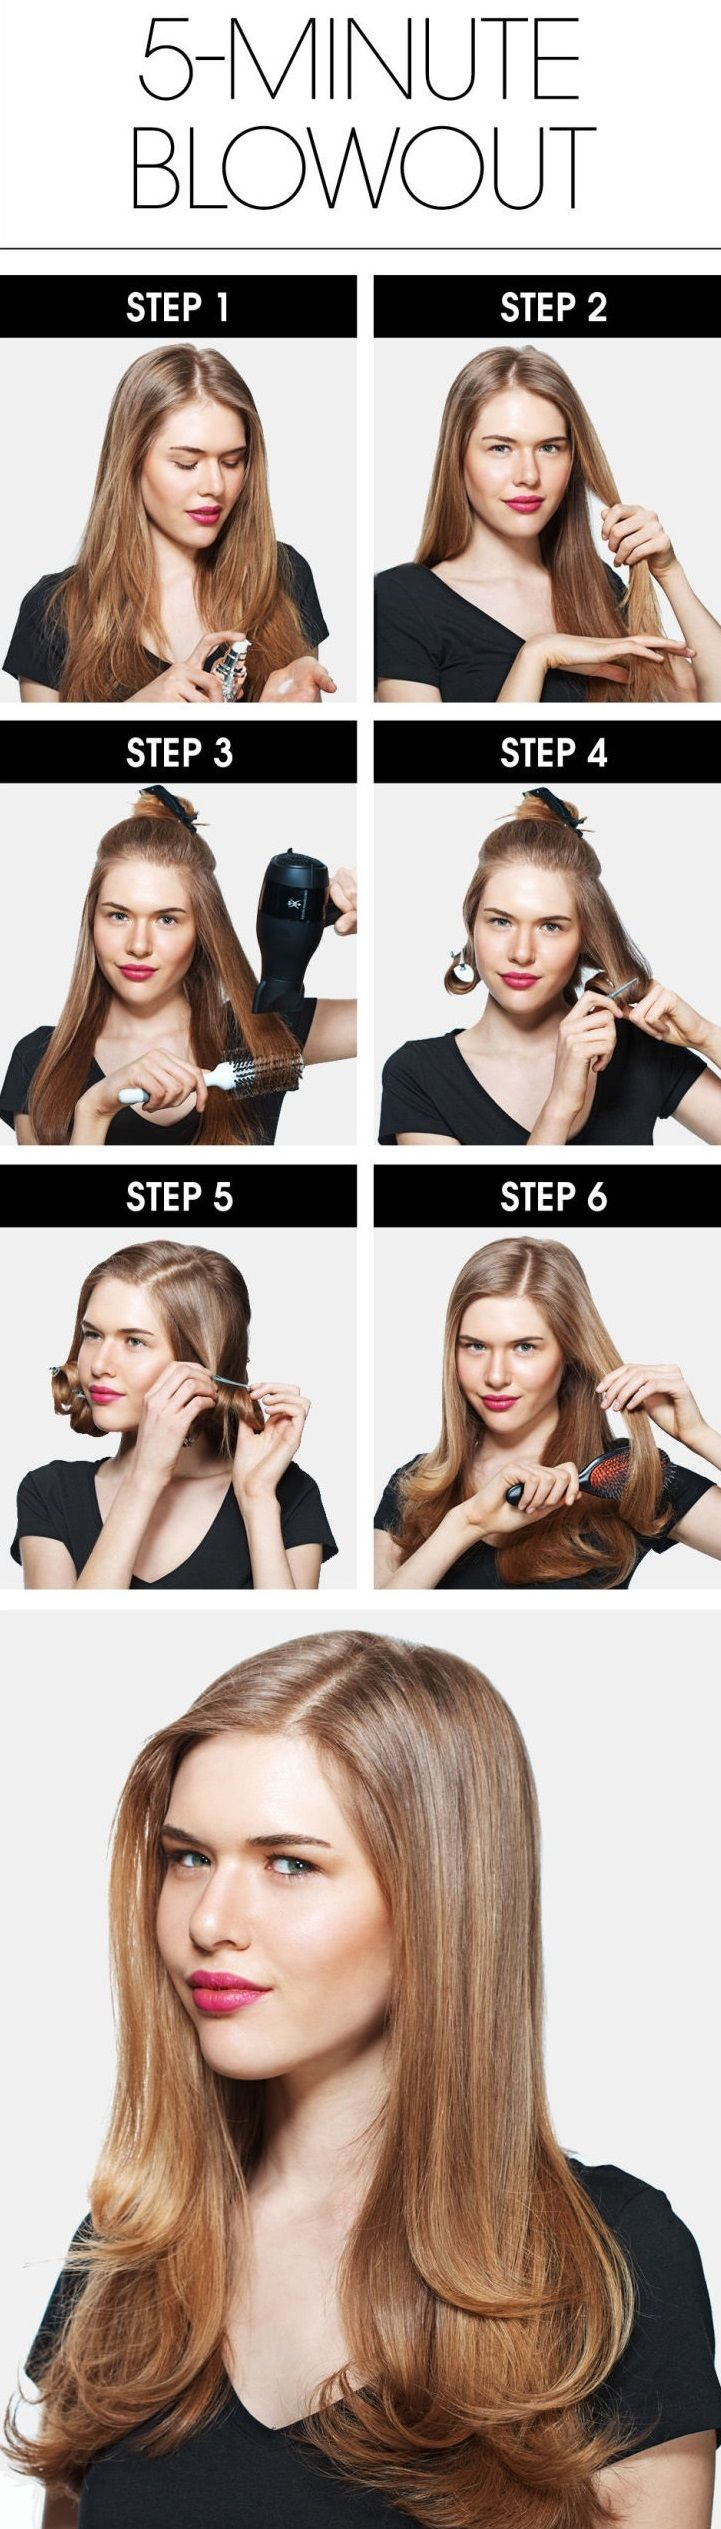 [Guide] On  Salon Style Perfect Hair Blowouts in 5 Minutes at Home with help of round brush with bristles and...